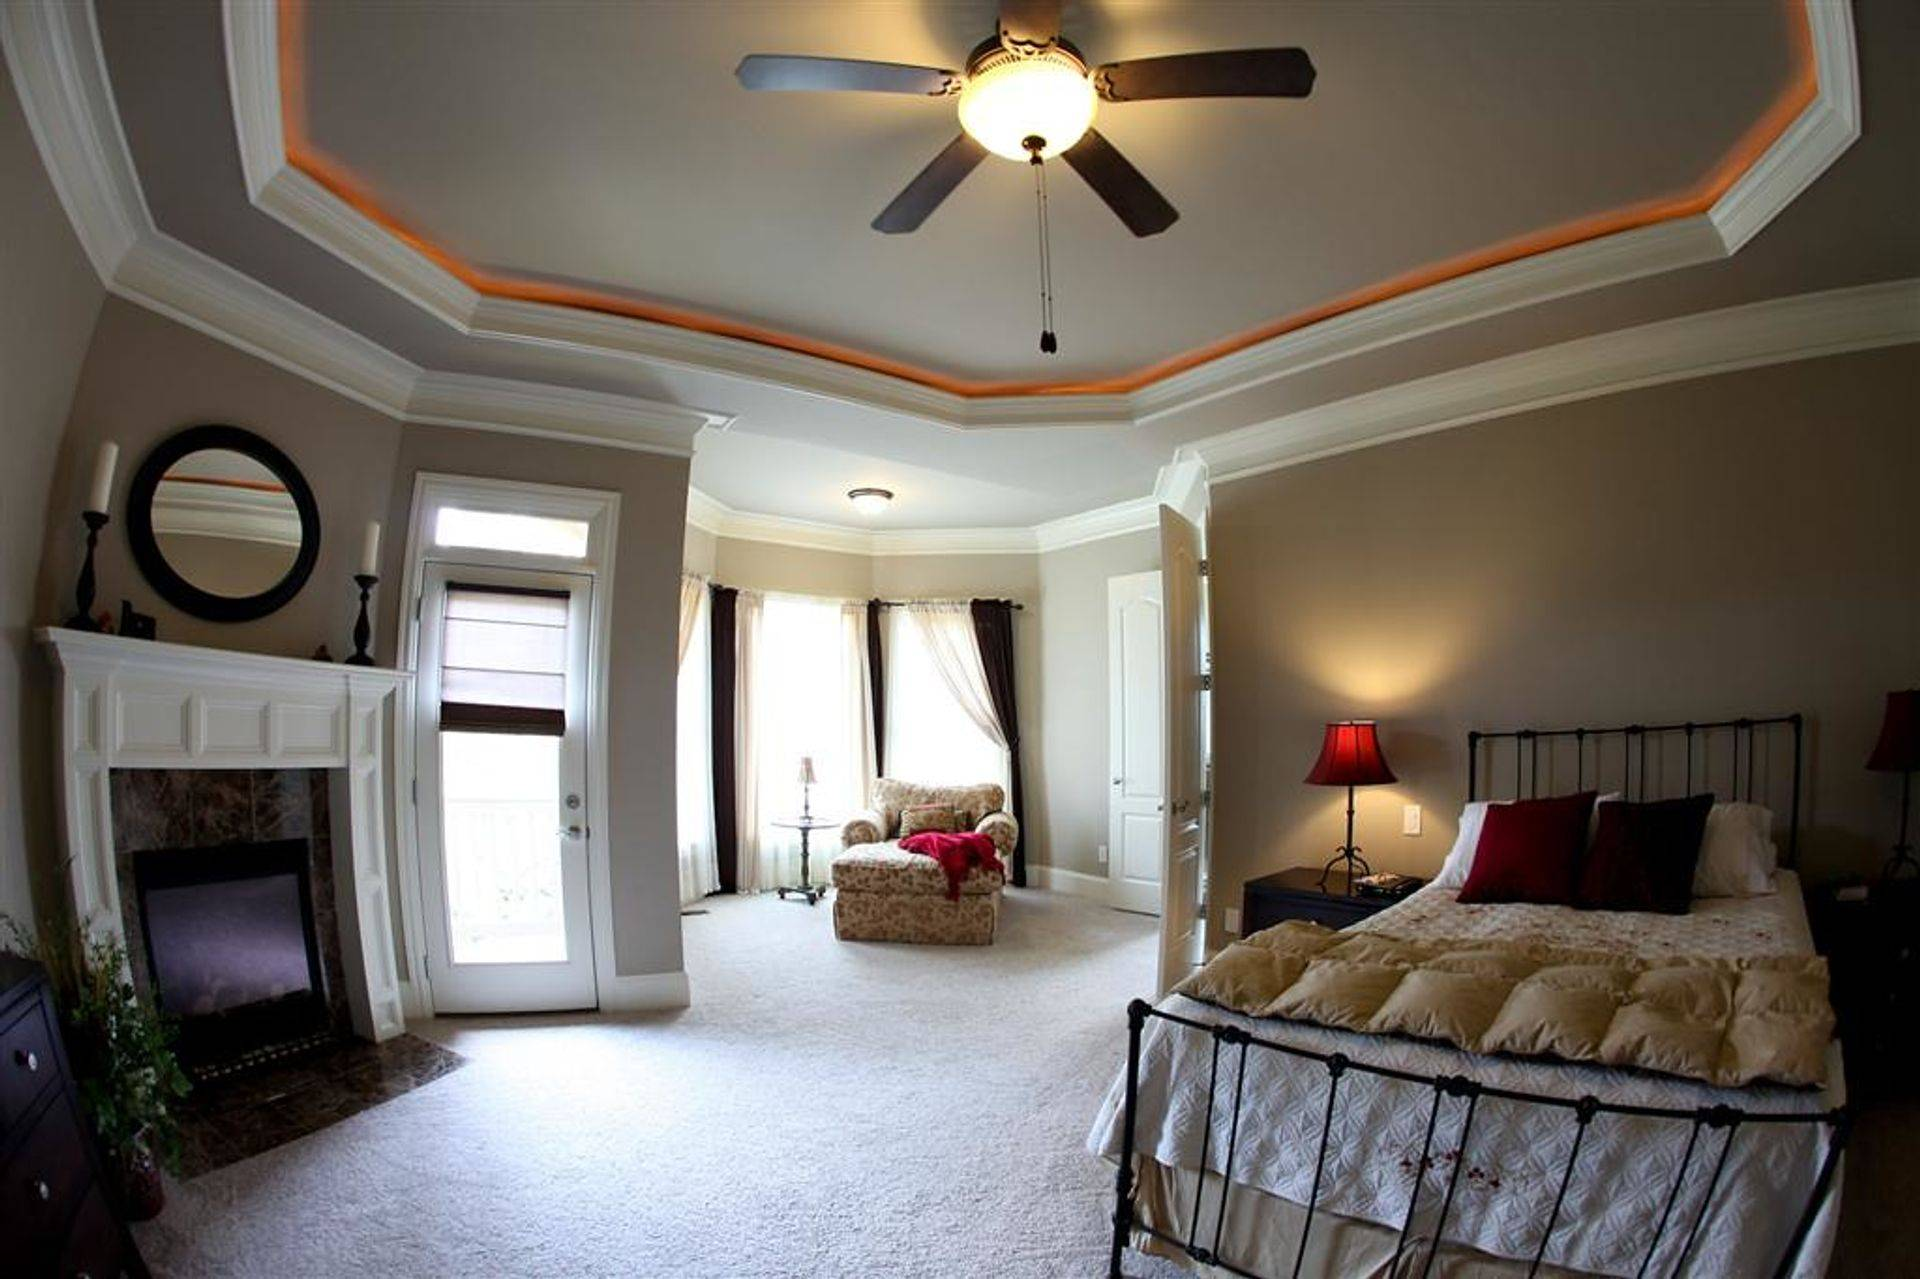 Interior wall, ceiling and trim painting